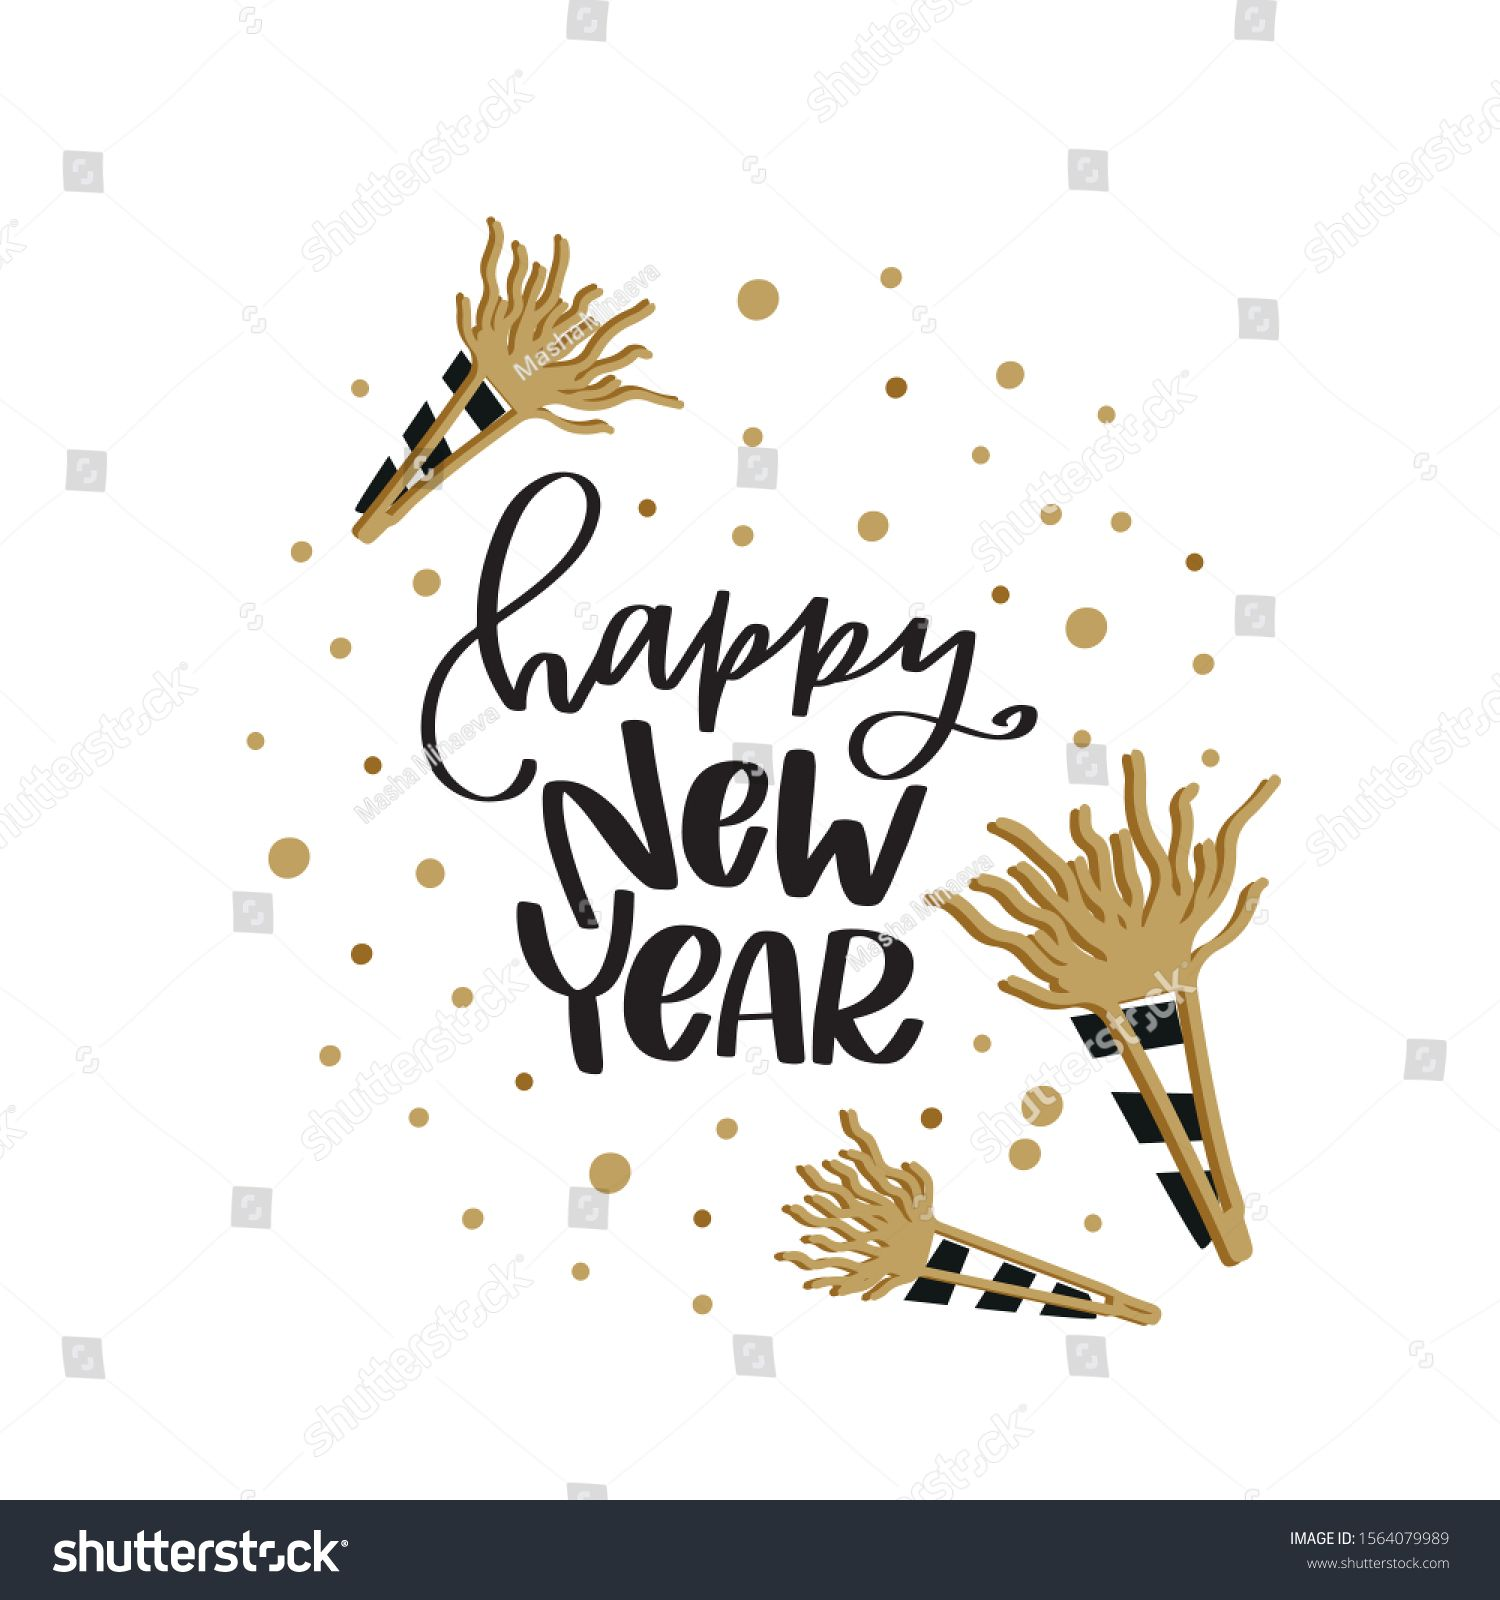 Happy New Year greeting text lettering with party horn